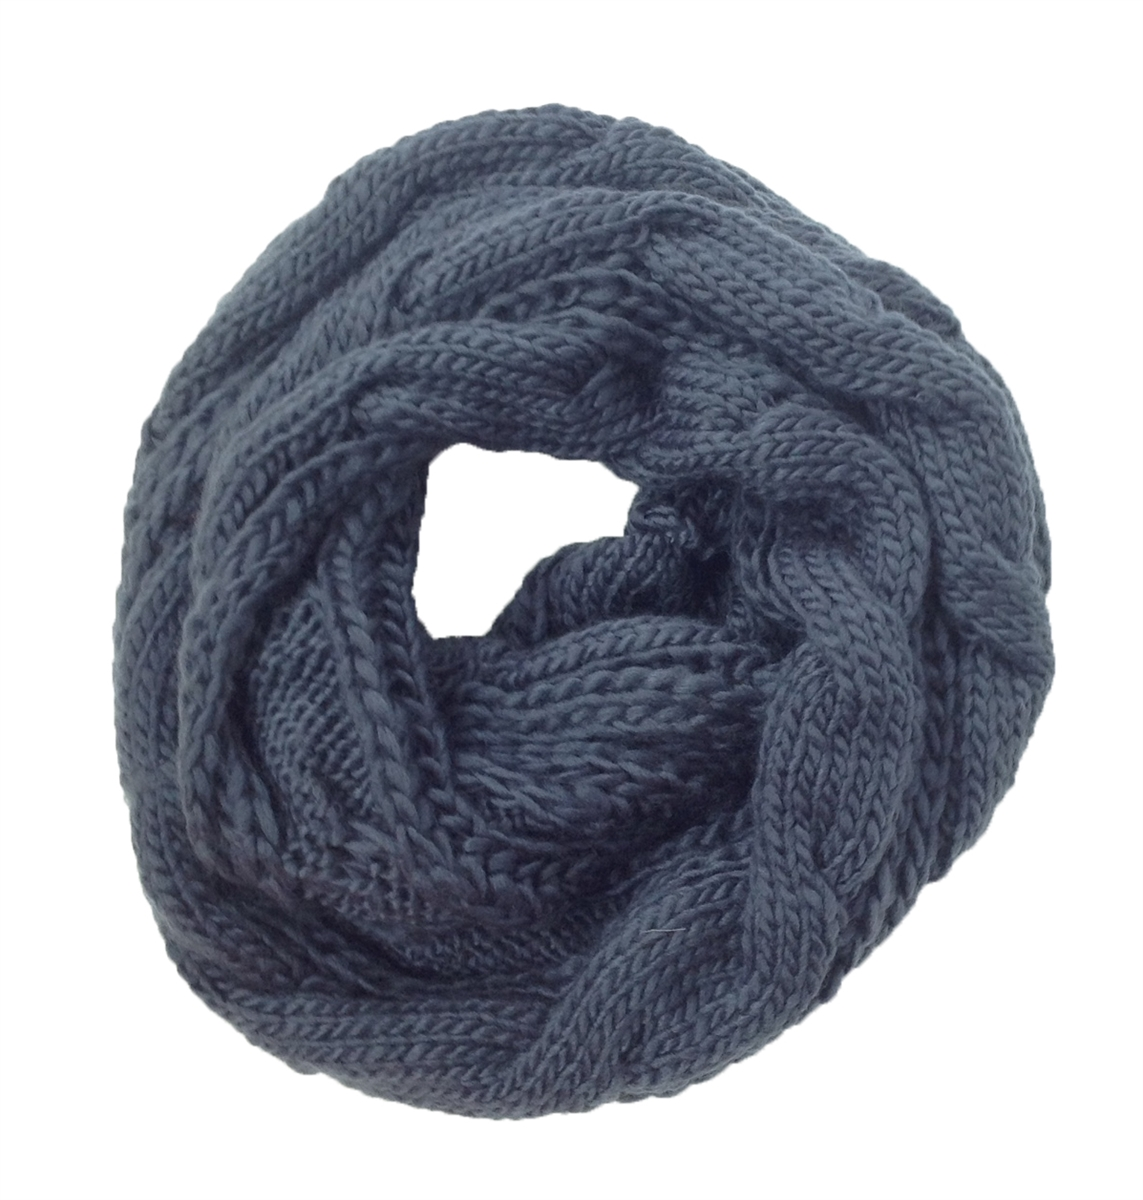 Cambridge Classic Cable Knit Infinity Scarf Grey